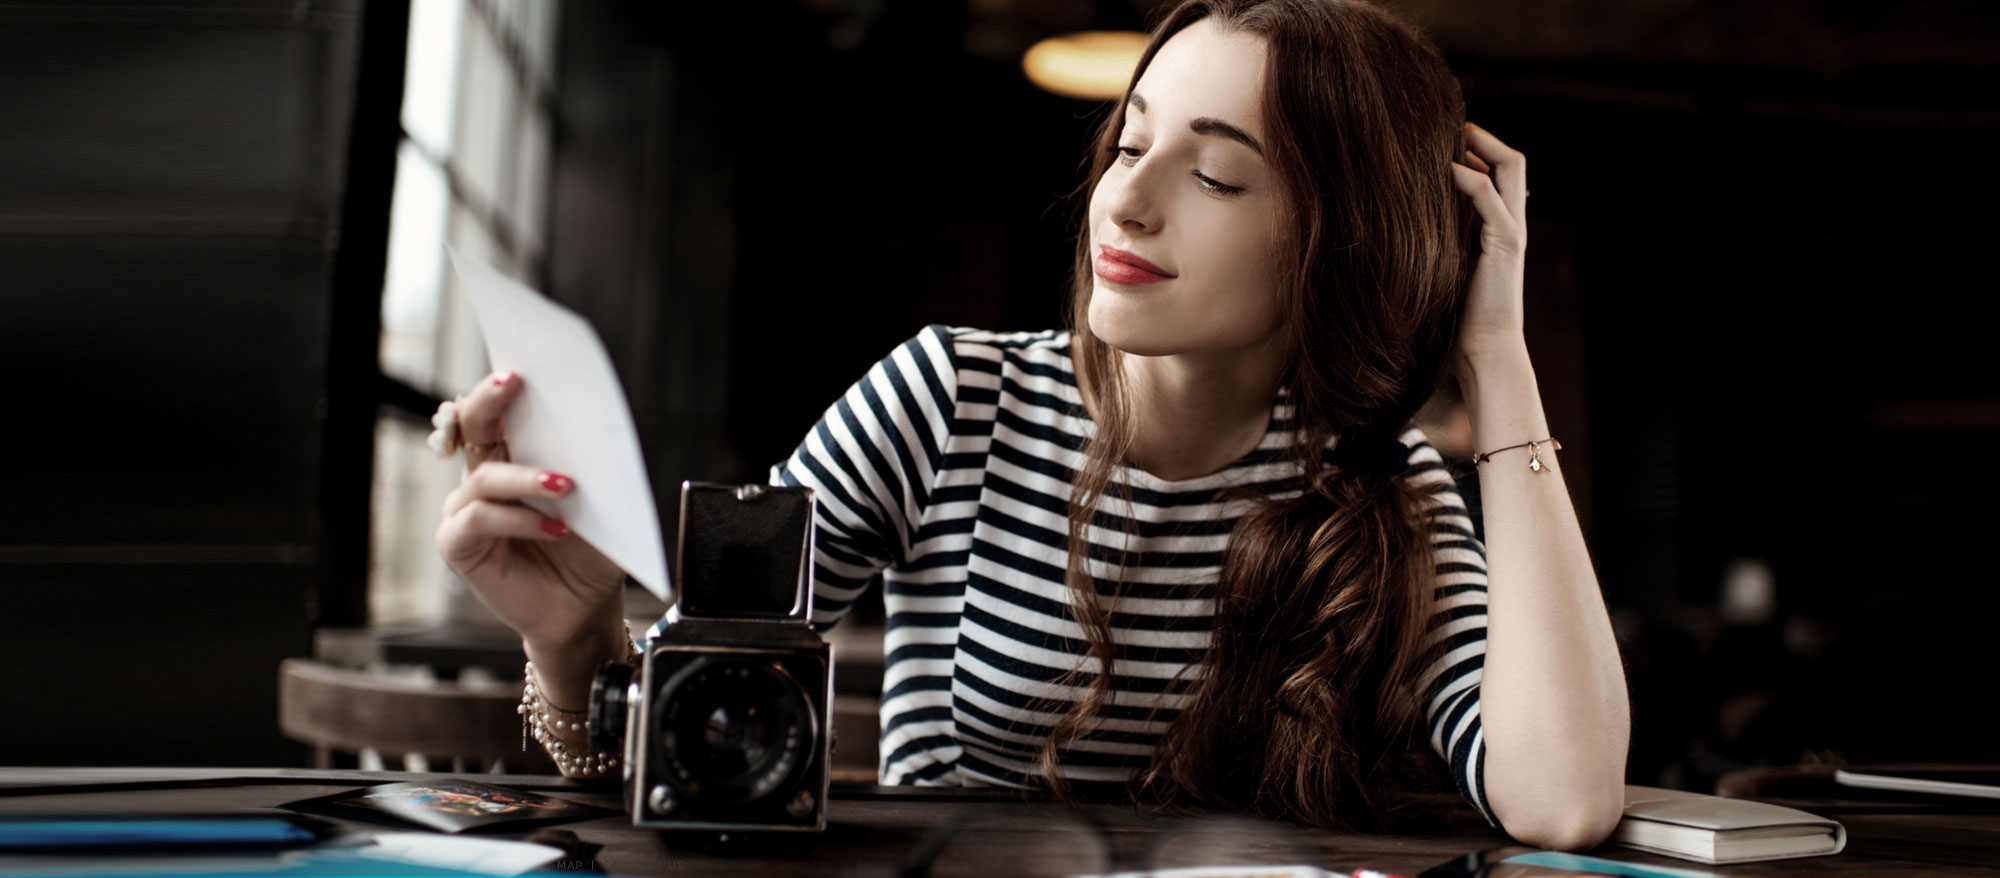 women wearing black and white stripped shirt, red lipstick. Sitting a in dark cafe with her vintage camera, admiring a photo